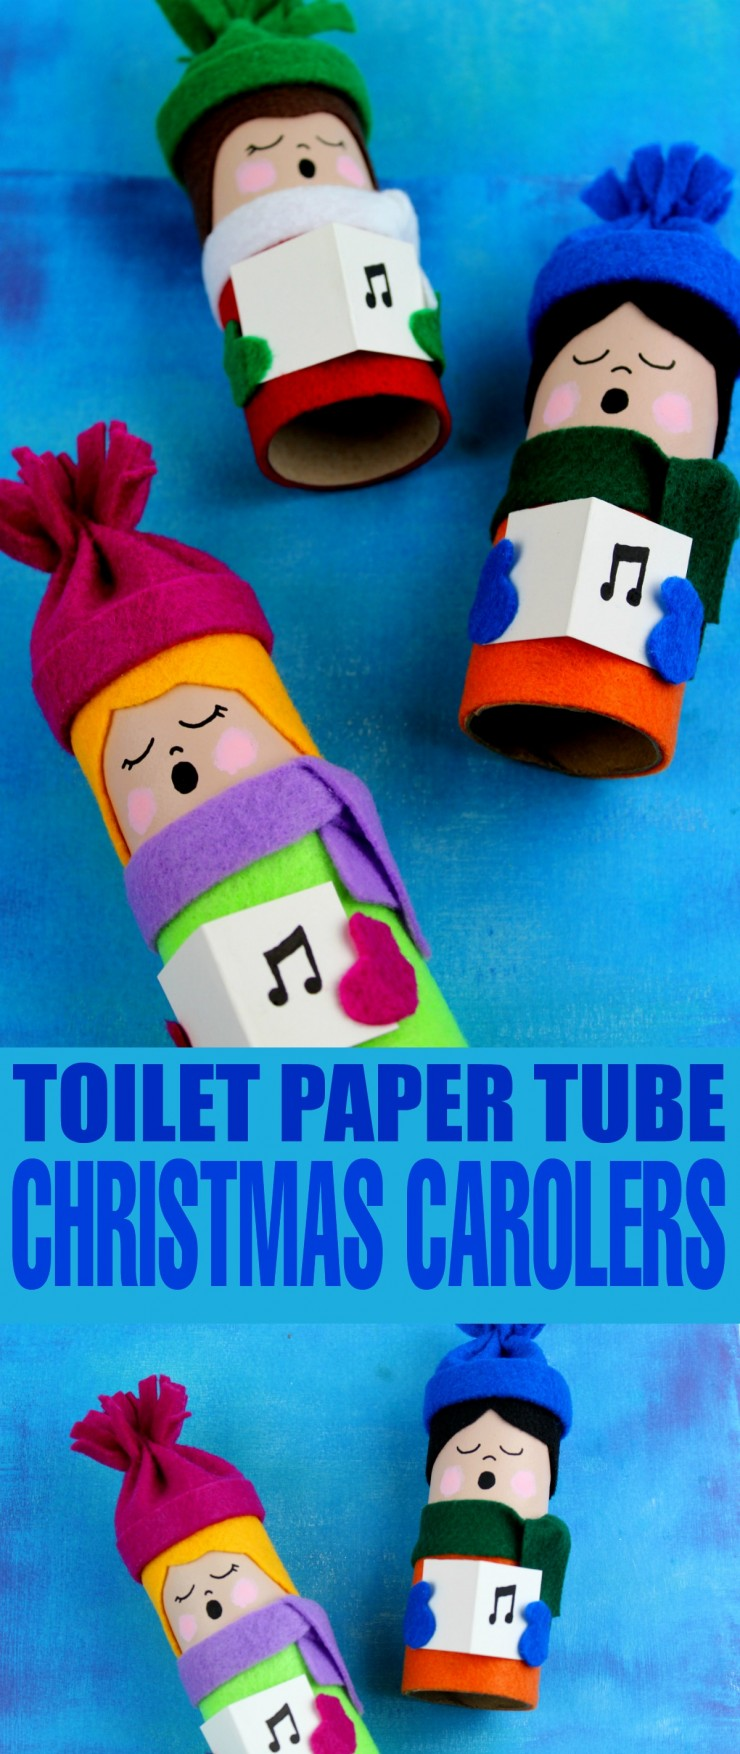 This Toilet Paper Tube Christmas Carolers craft is a great way to celebrate the season and create a unique display while re-using toilet paper rolls!